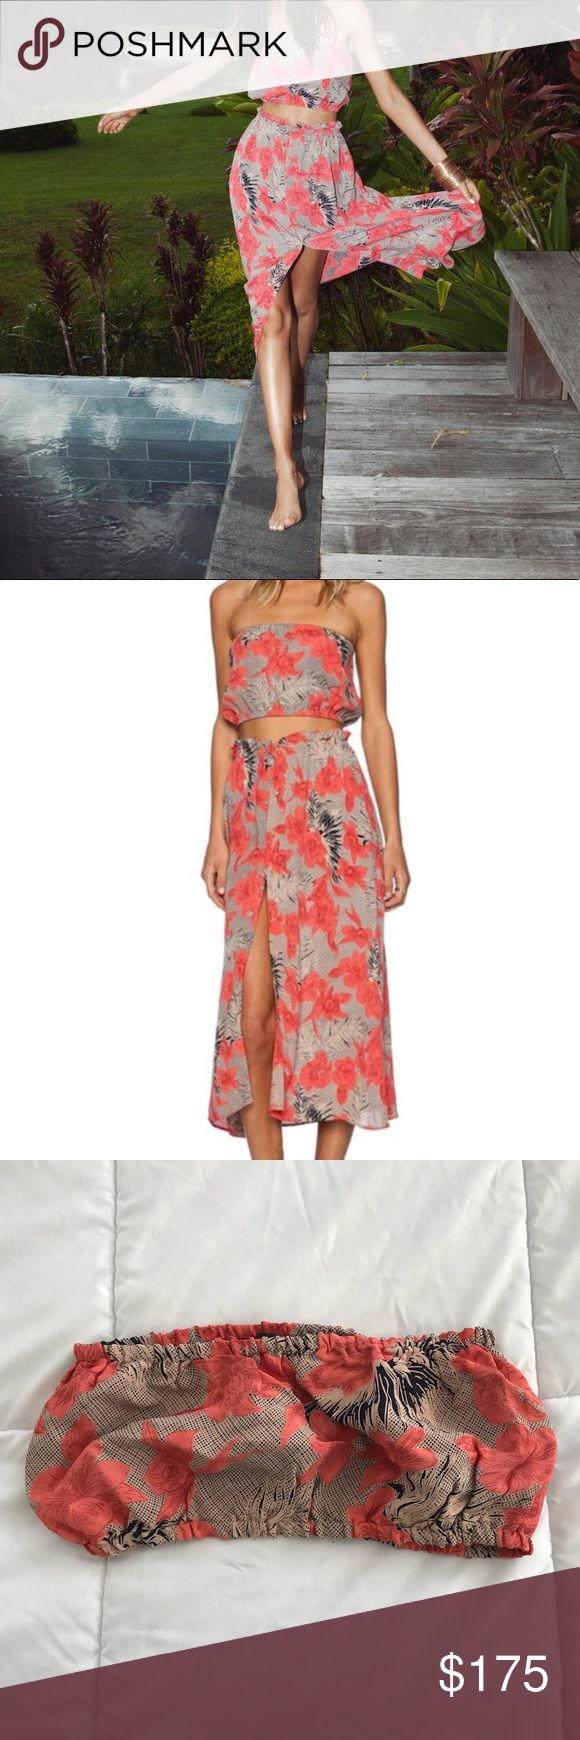 ✨For Love and Lemons🌺 Mai Tai set A GORGEOUS matching set from for love & Lemons. The mai tai tube top and maxi skirt in the red orchid print. Perfect for a tropical vacation or spring break! Tube top is elastic and a size medium but best fits a small. The beautiful skirt has functional buttons down the front and pockets on both sides. Skirt is a size small. Both pieces in excellent condition. Only selling as a set!  ⭐️ Top-rated seller! 💌 All items ship same or next day 📩 Offers…